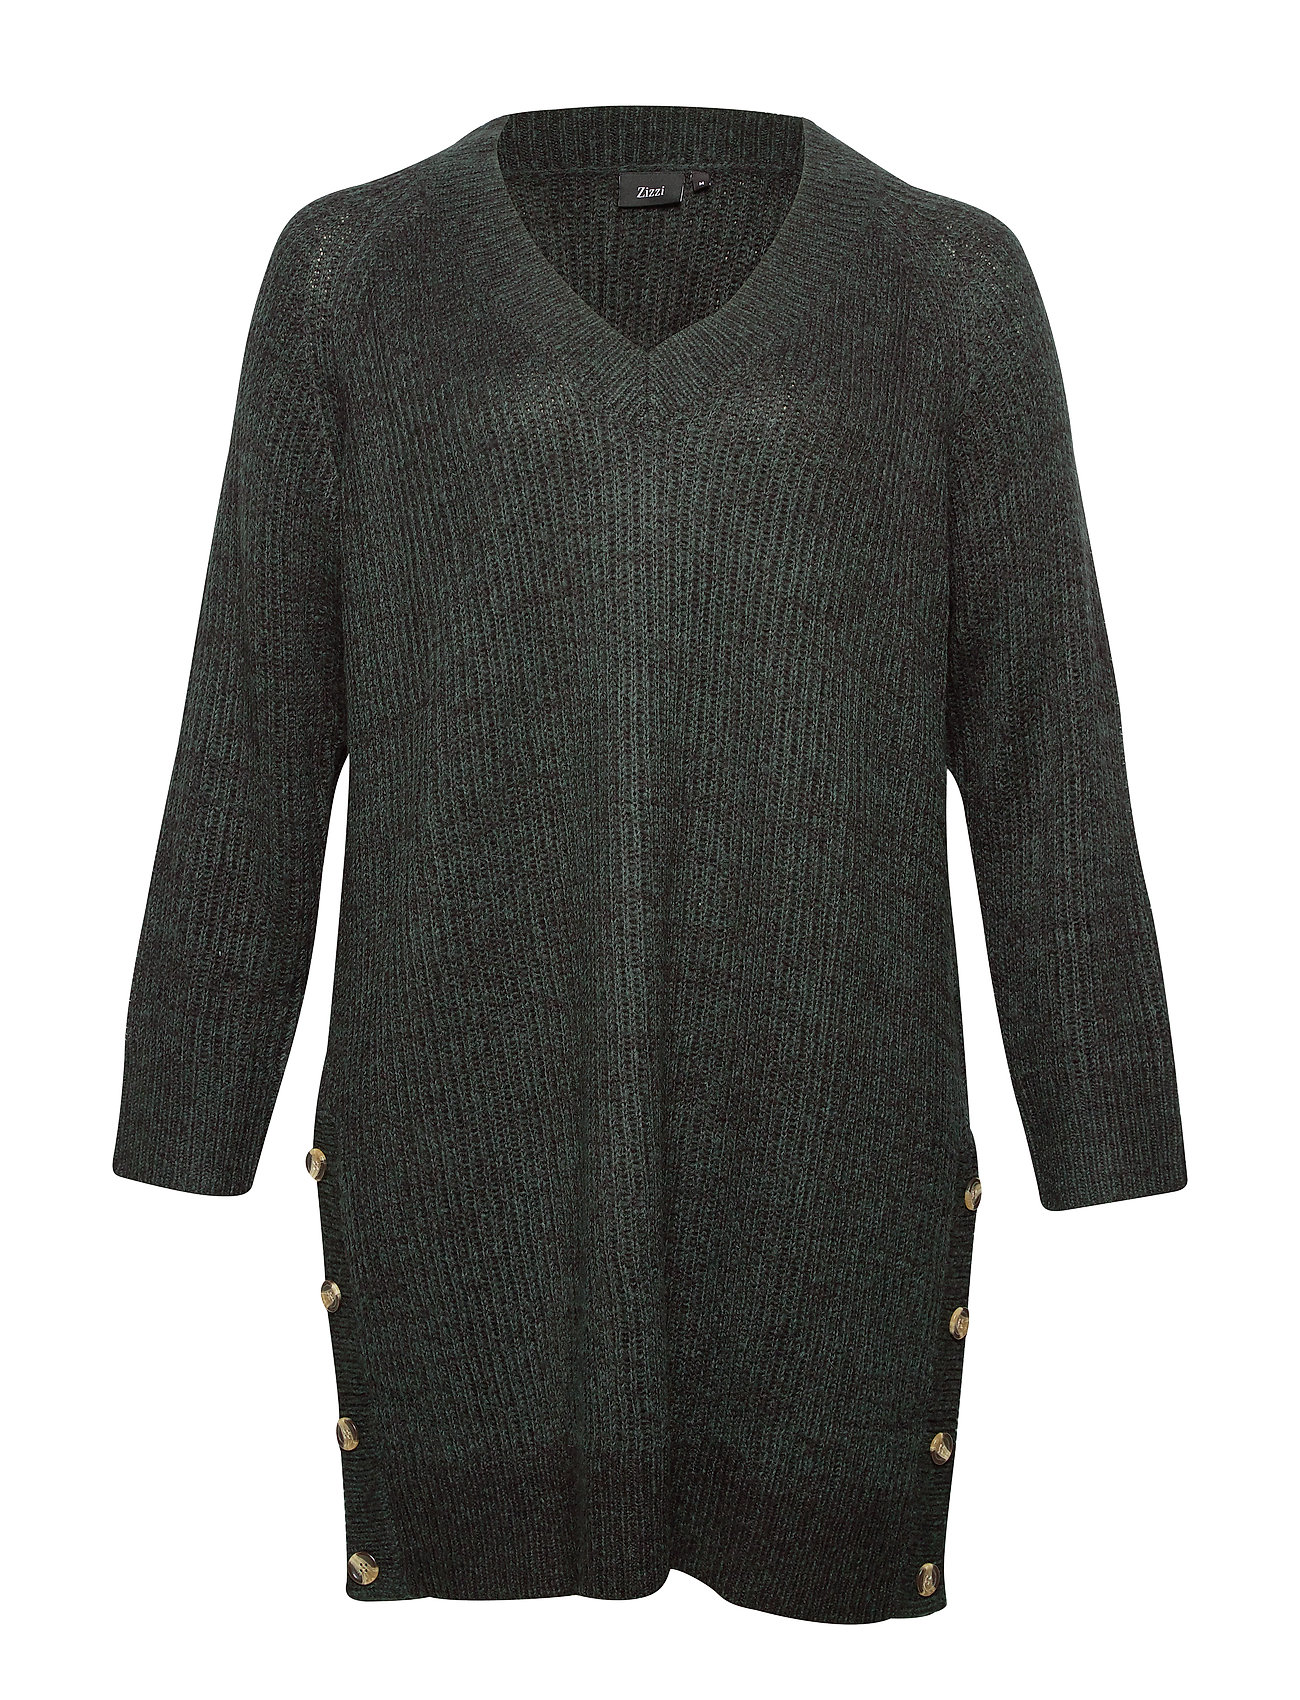 Zizzi MSELINA, L/S, DRESS, KNT - DARK GREEN